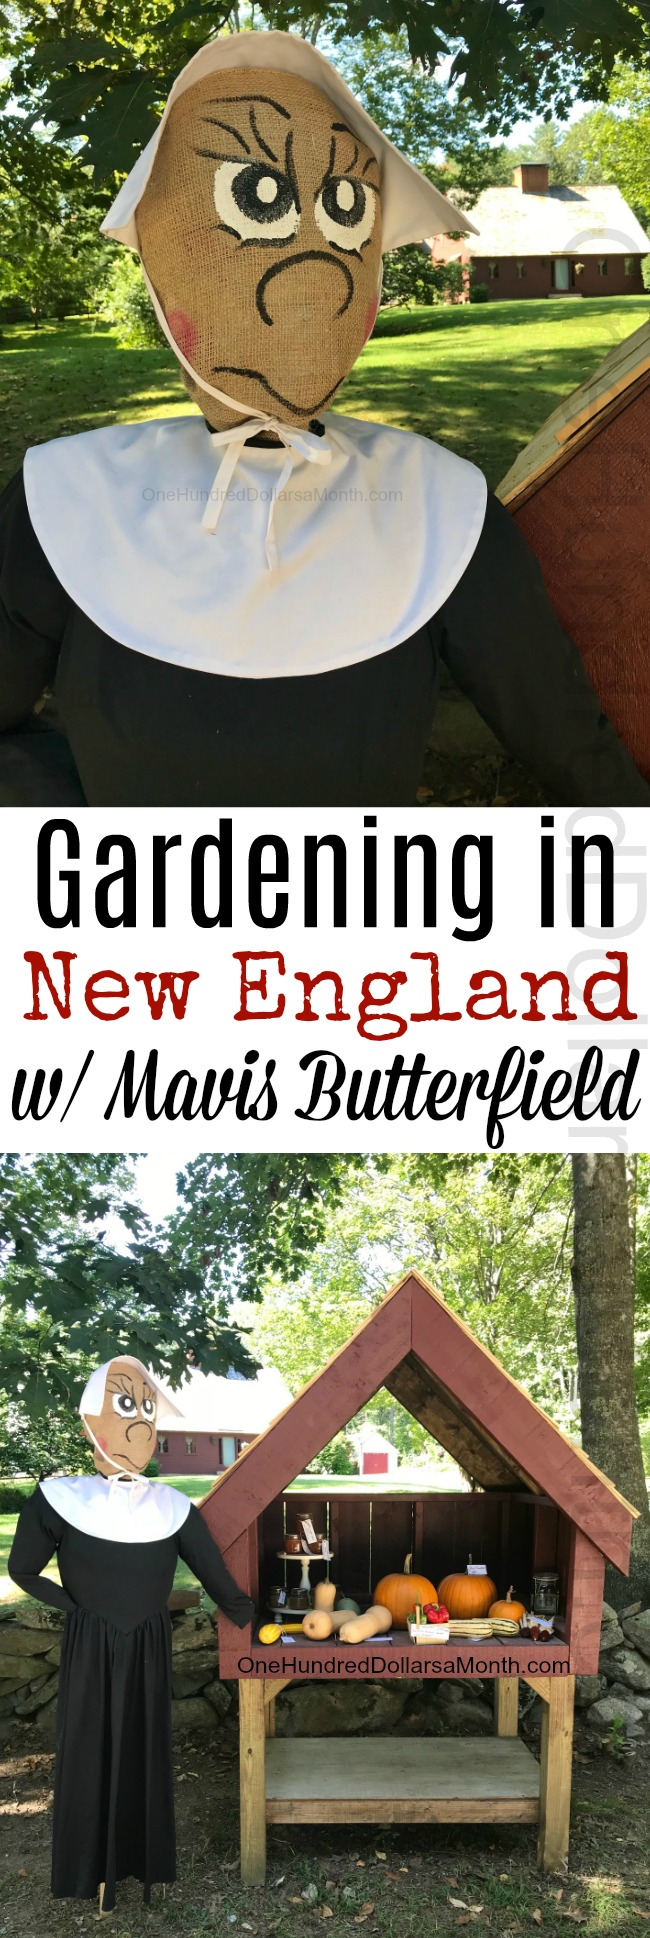 Gardening in New England – New Garden Stand Photos and a Garden Tally Update!